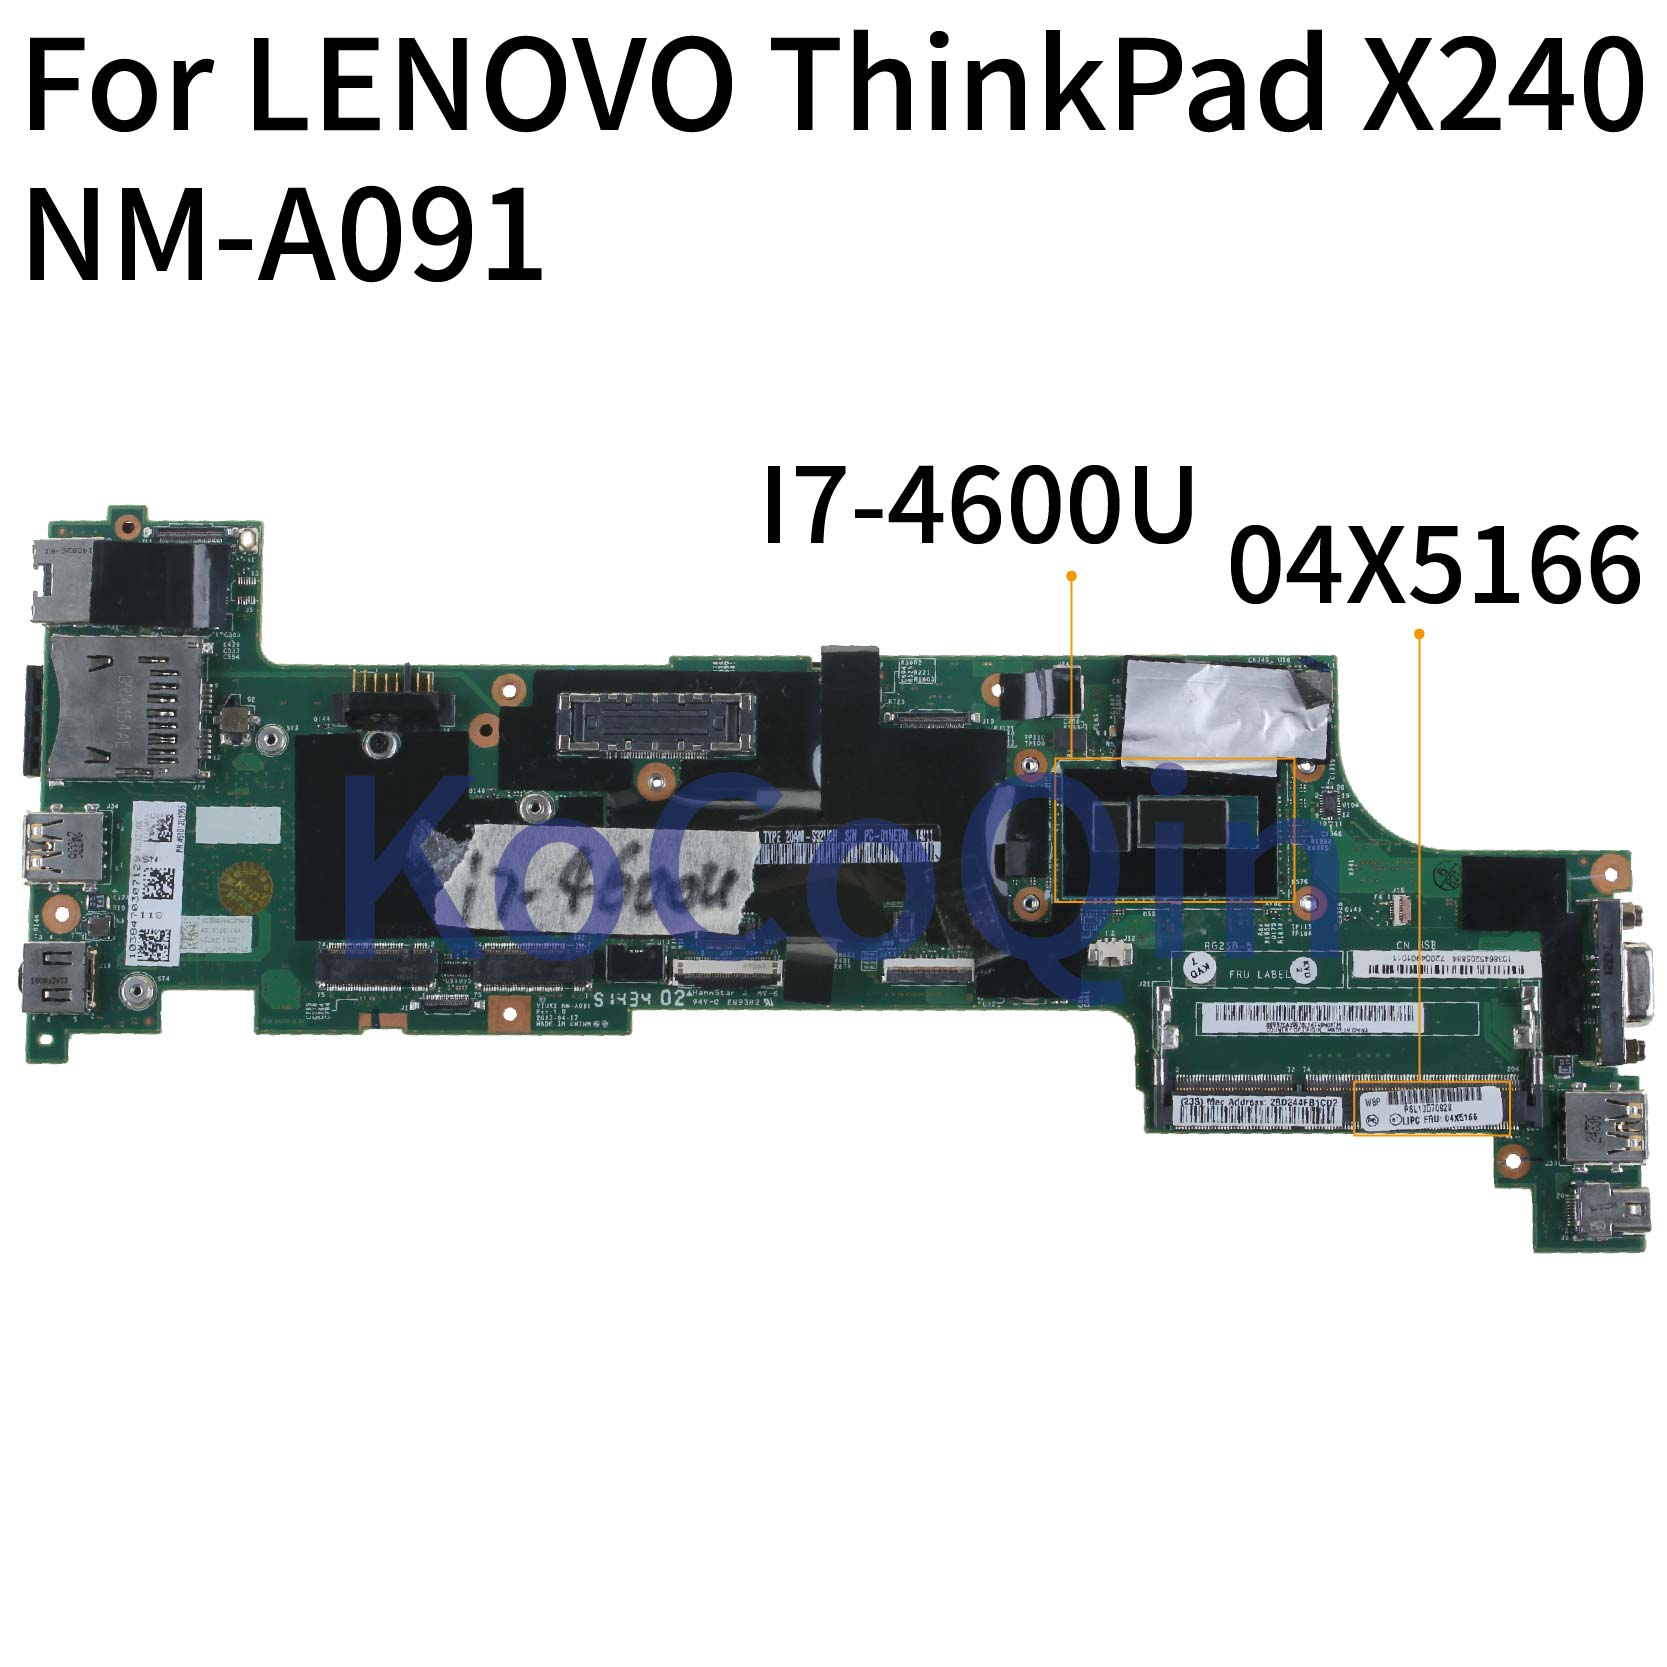 KoCoQin Laptop Motherboard For LENOVO ThinkPad X240 I7-4600U Mainboard 04X5166 04X5178 VIUX1 NM-A091